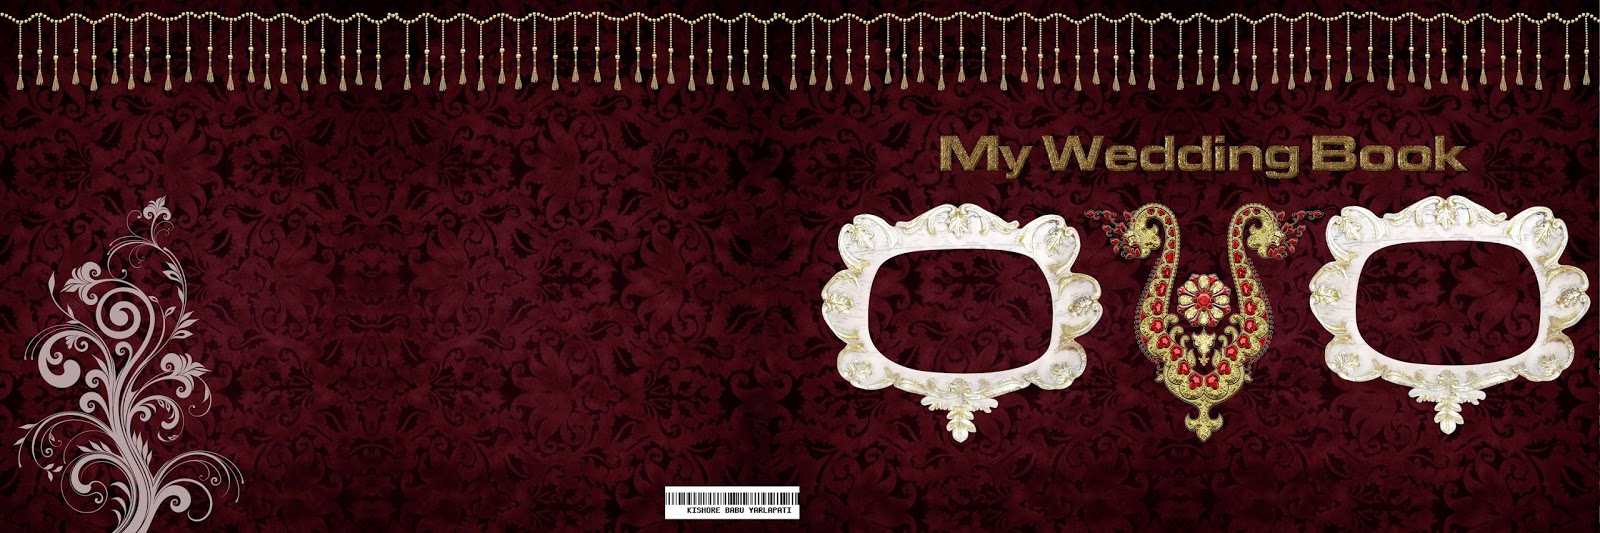 12X36 Wedding Album Cover Page